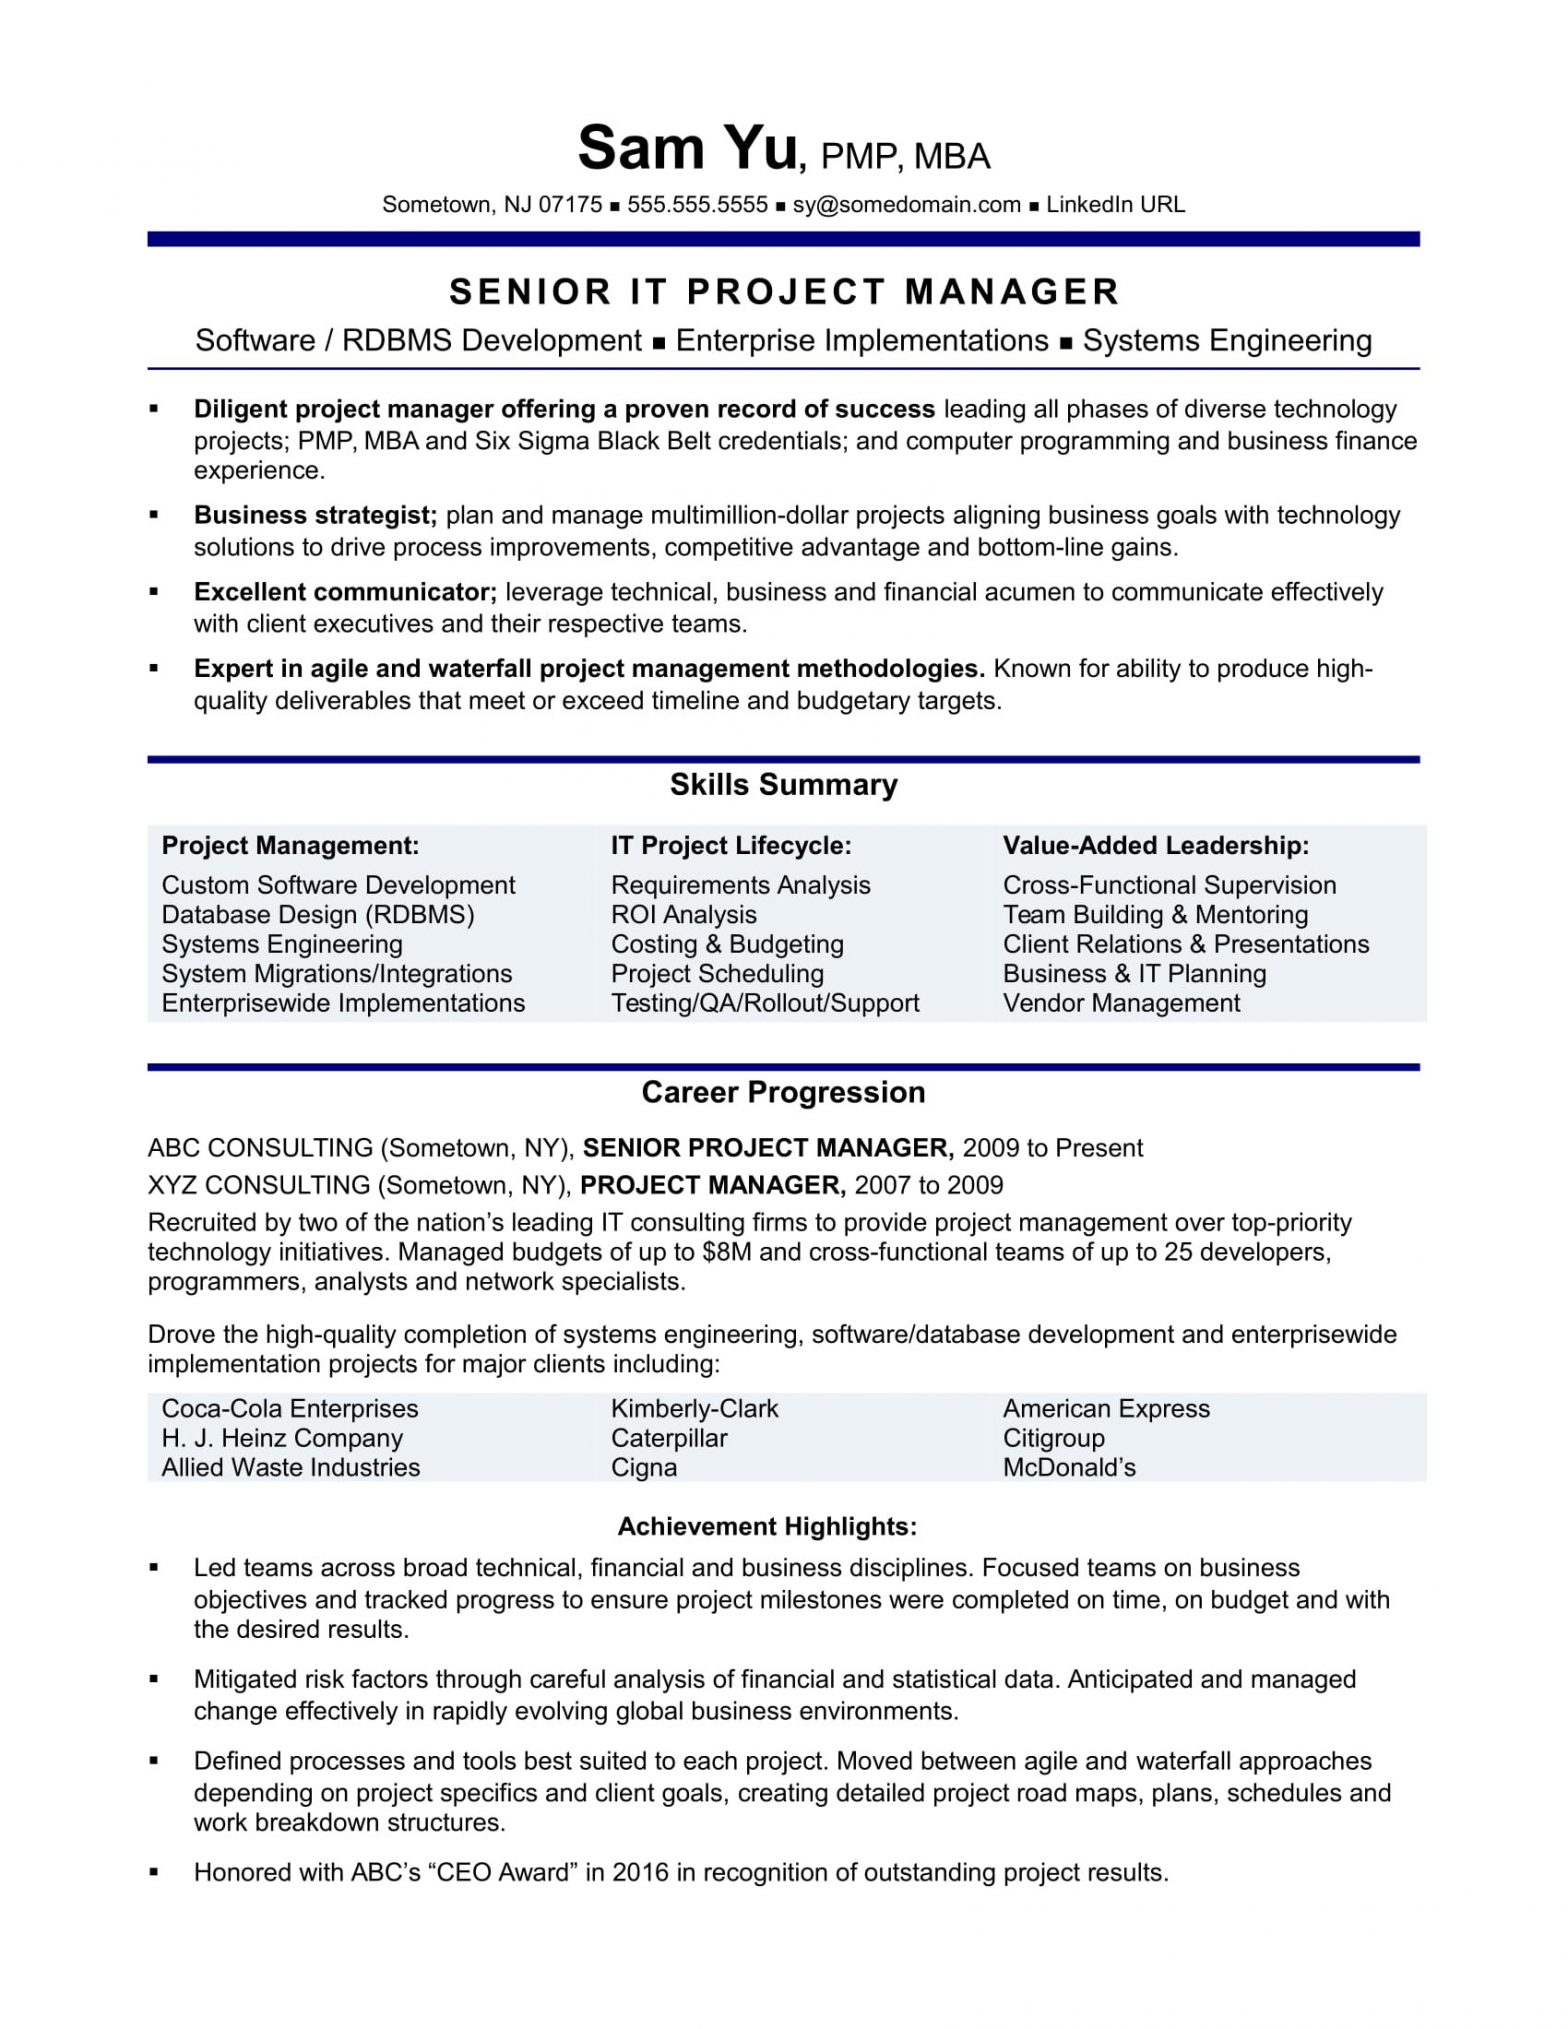 Project Manager Job Description Sample Resume Experienced It Project Manager Resume Monster.com